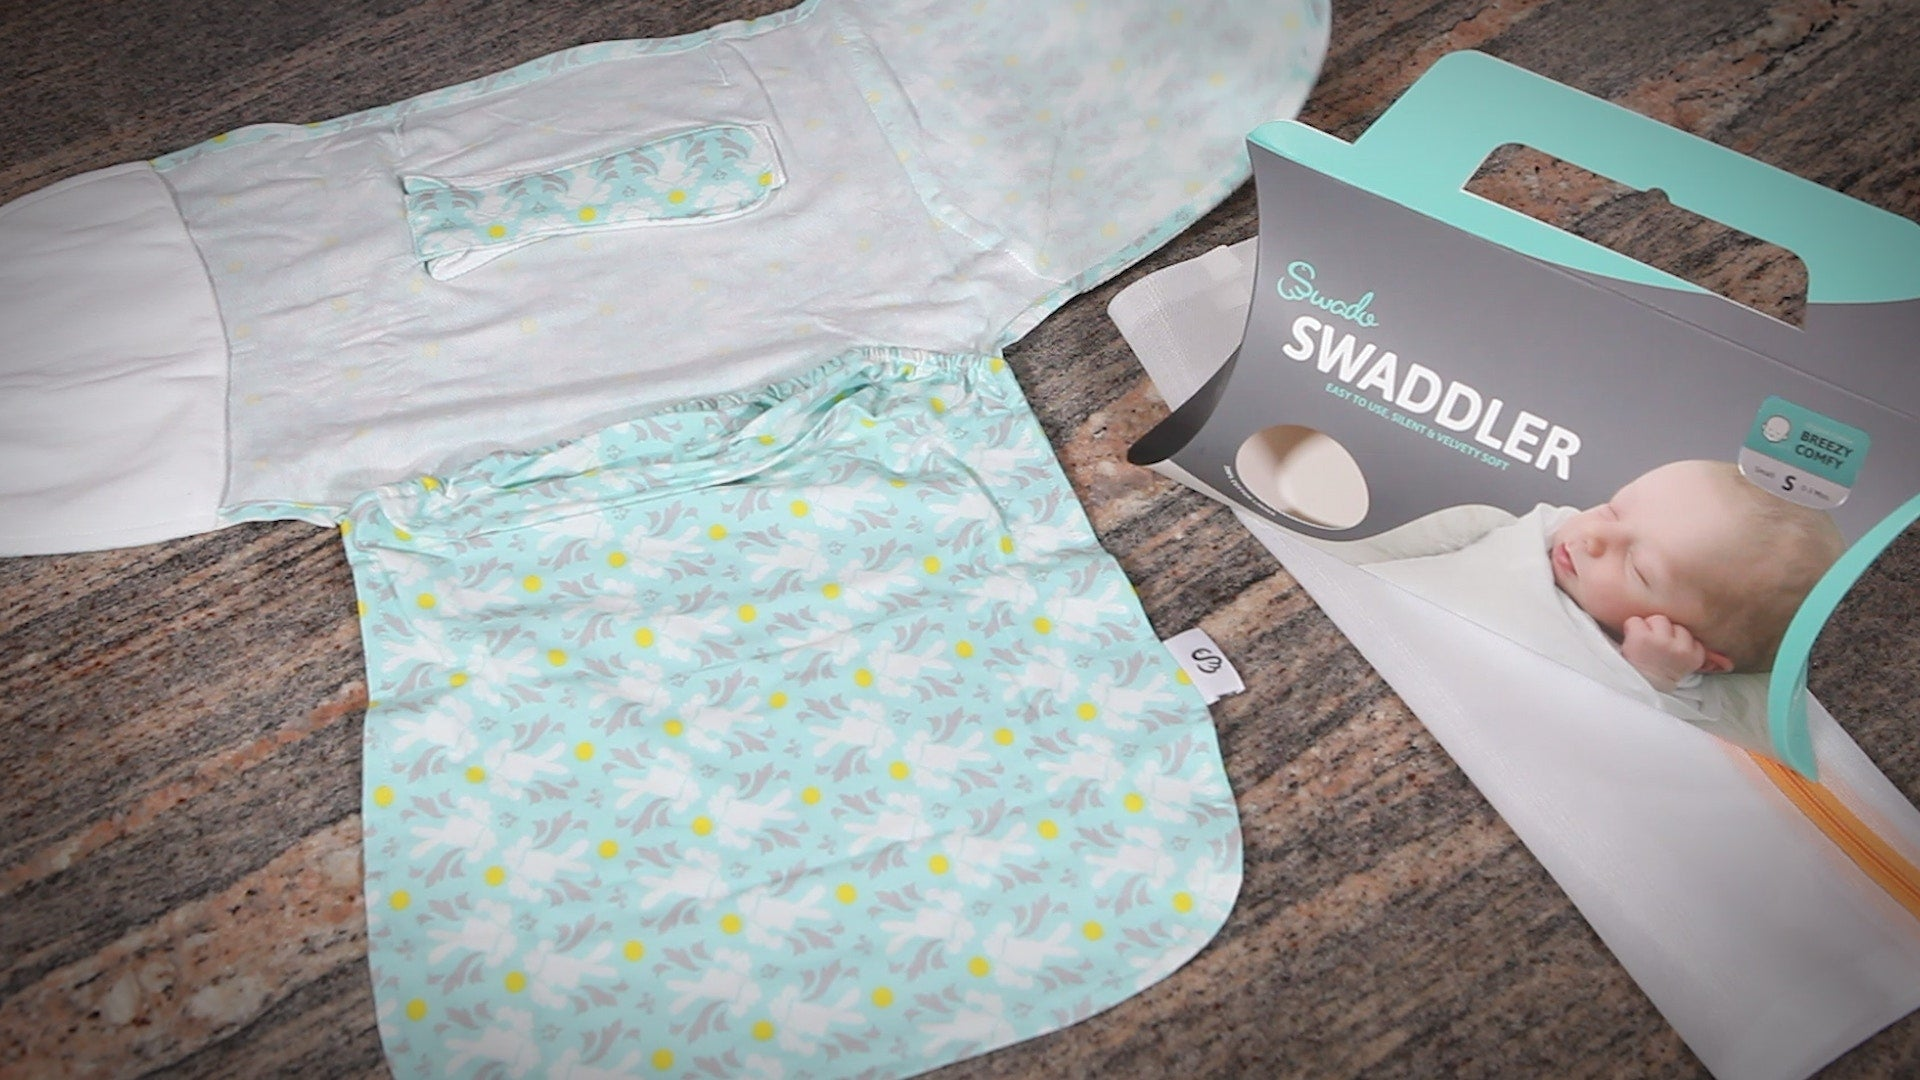 Swaddler diapers